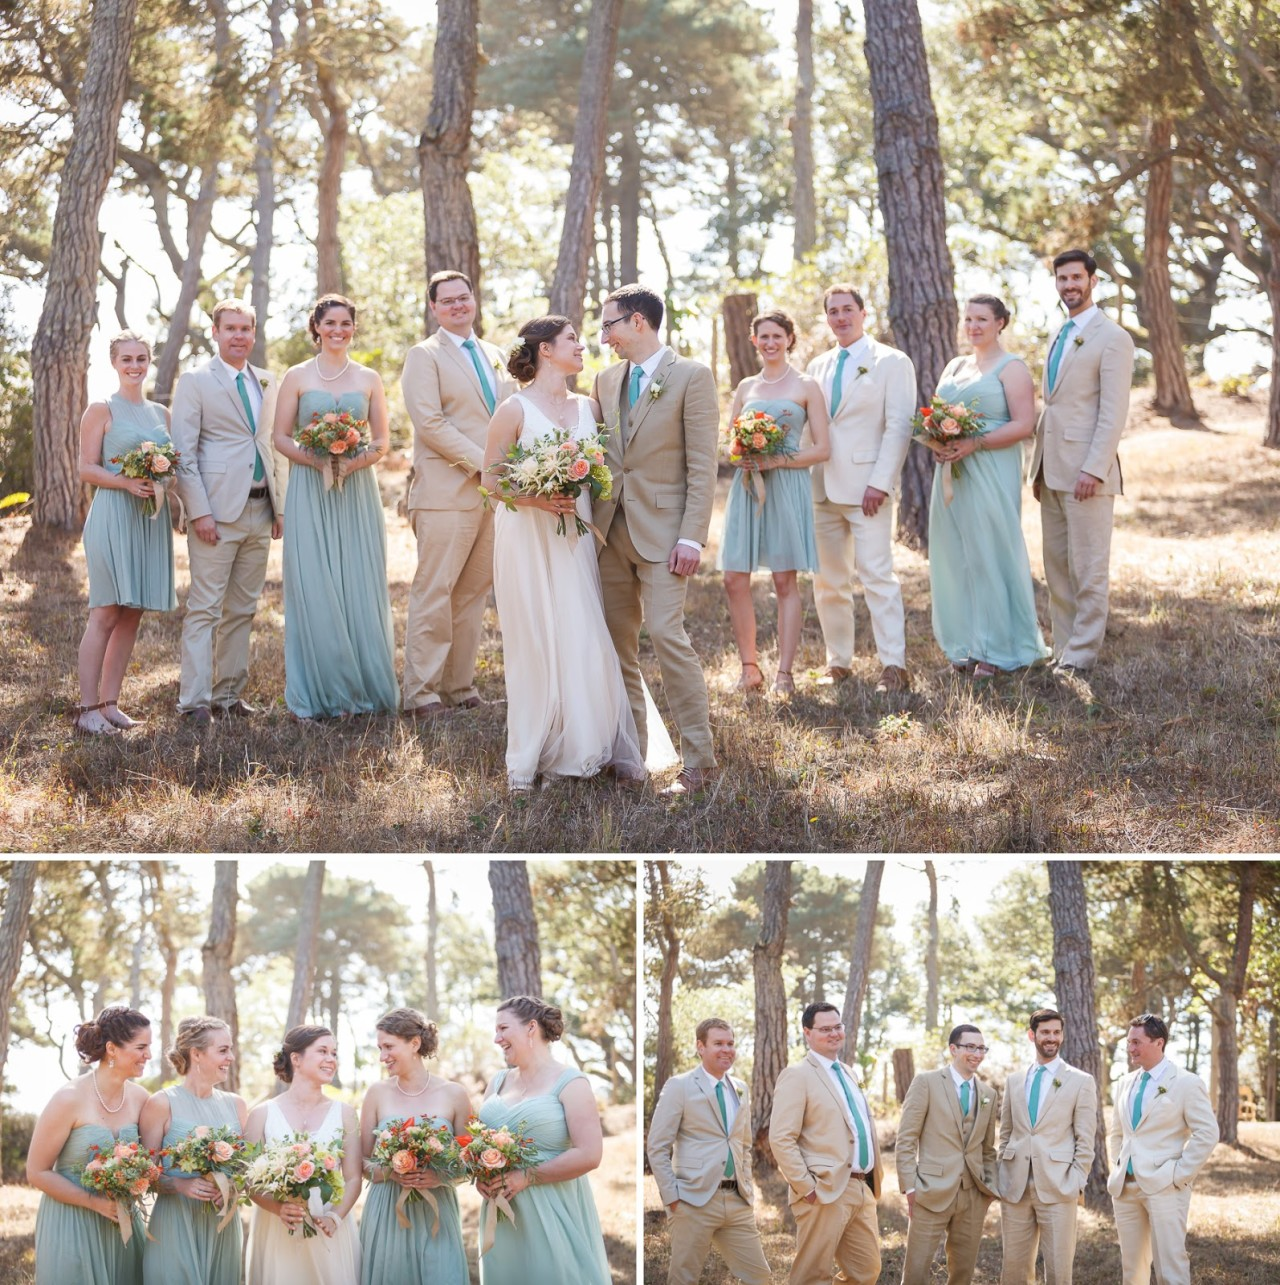 We Are Excited For The Marriage Ahead And All Of Many Adventures Dinners That You Will Share This Wedding Also Published On Borrowed Blue